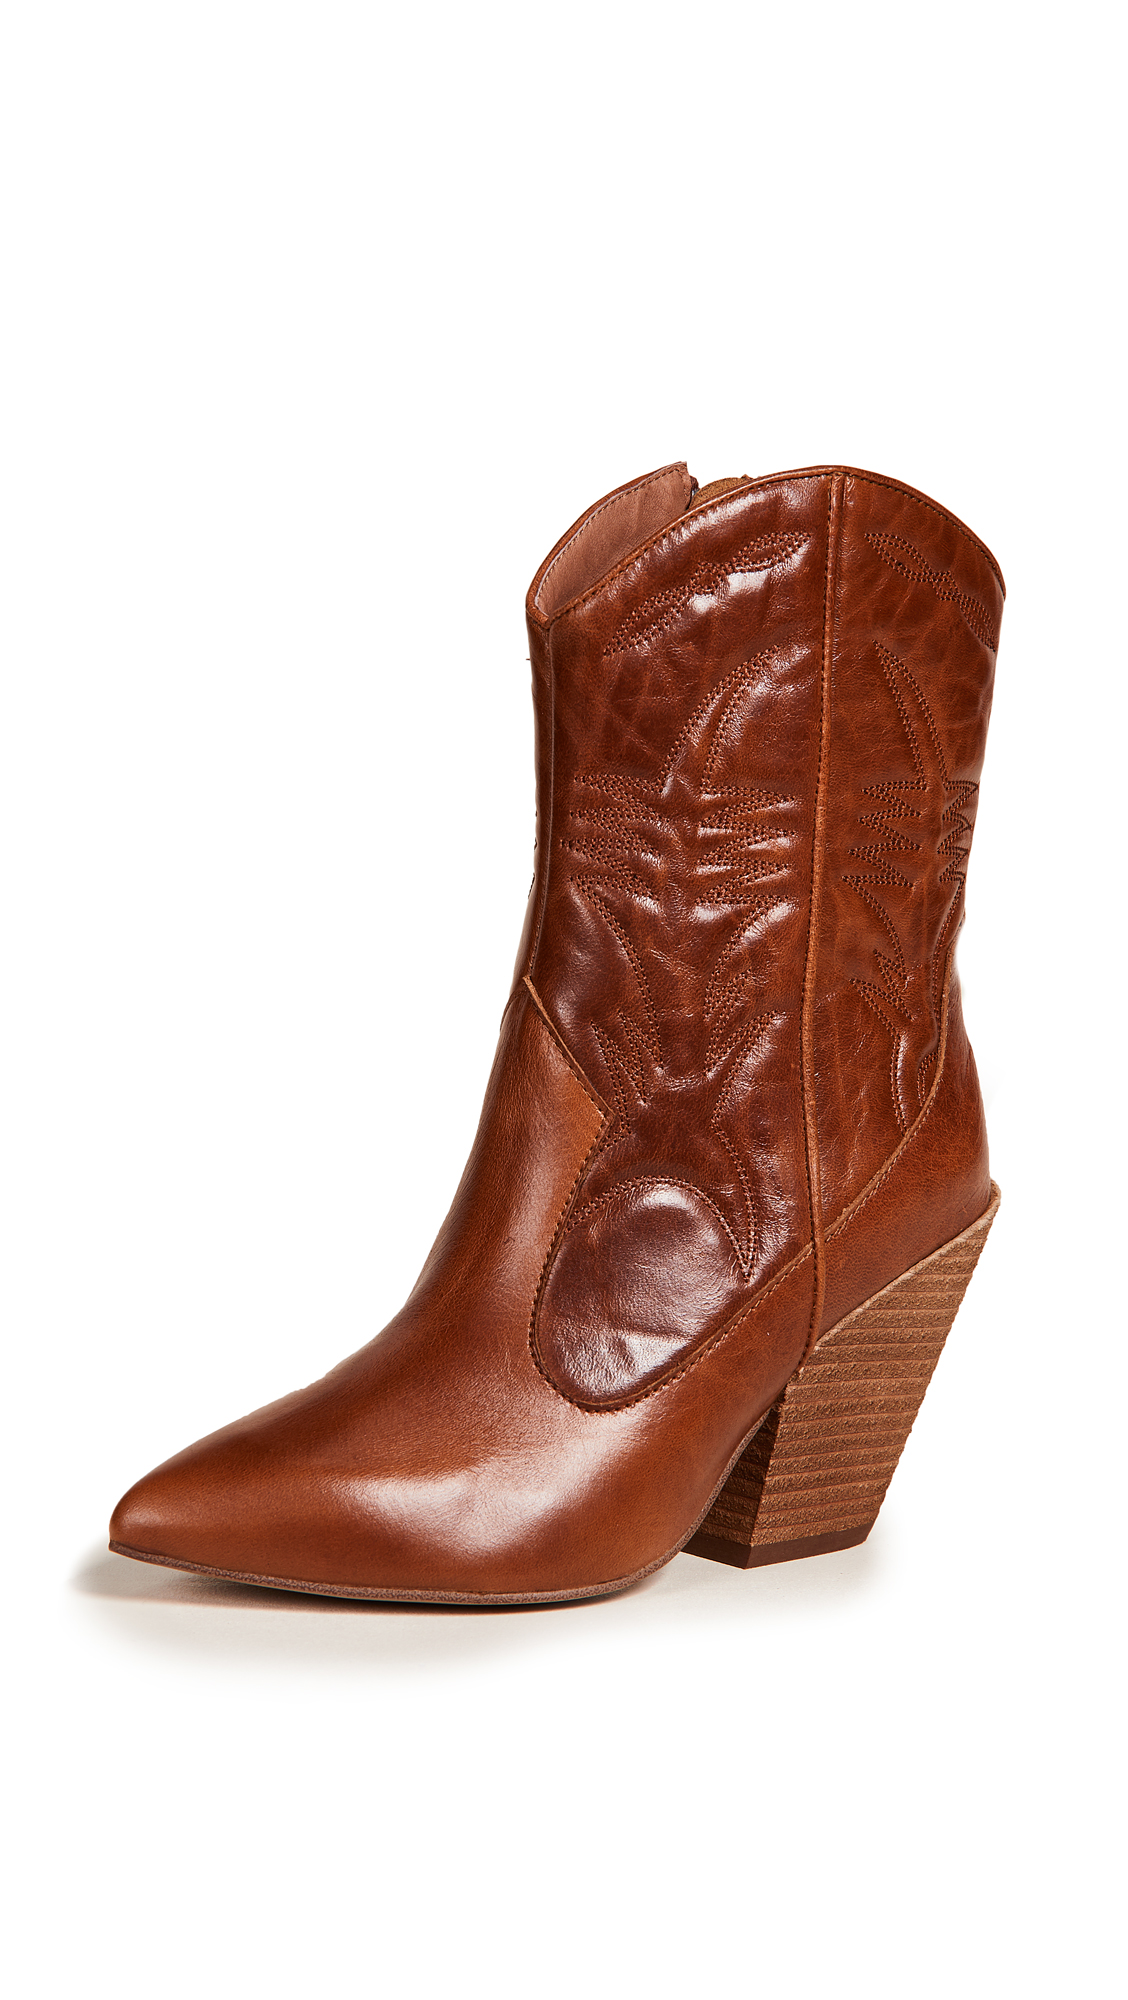 Jeffrey Campbell Midpark Western Boots - Tan